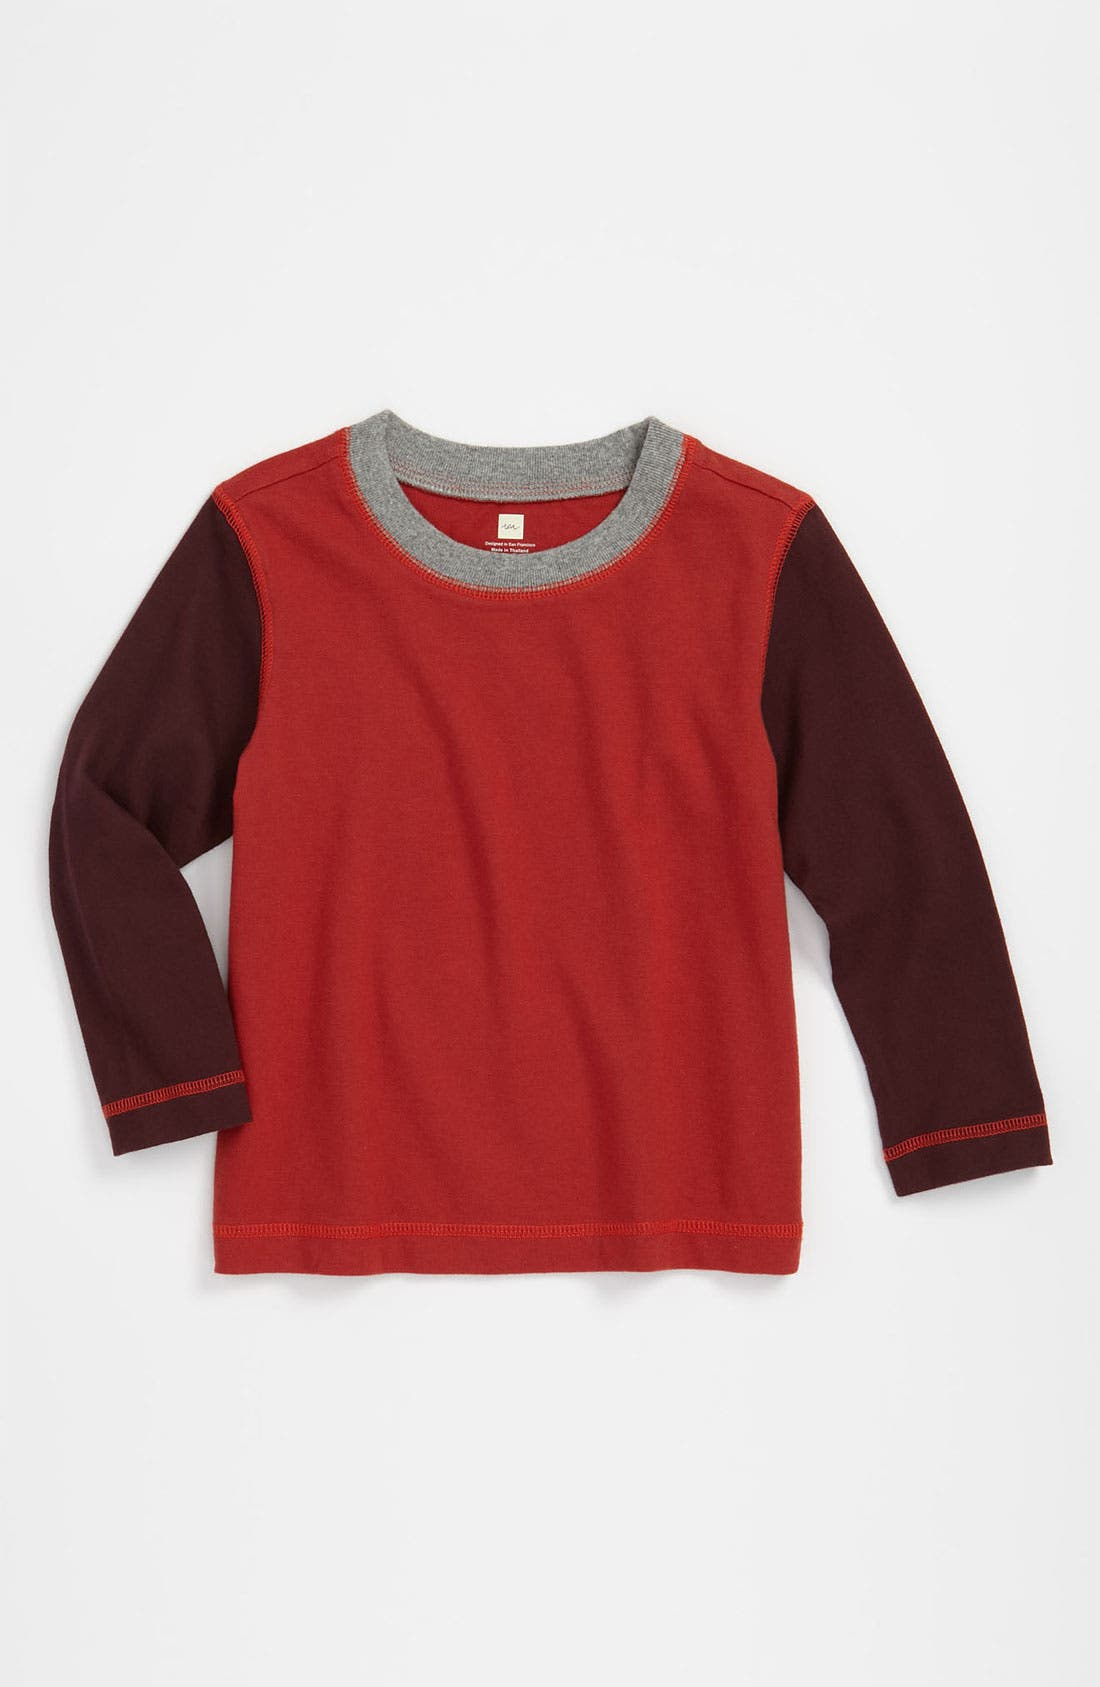 Alternate Image 1 Selected - Tea Collection 'Cool Colorblock' T-Shirt (Toddler)